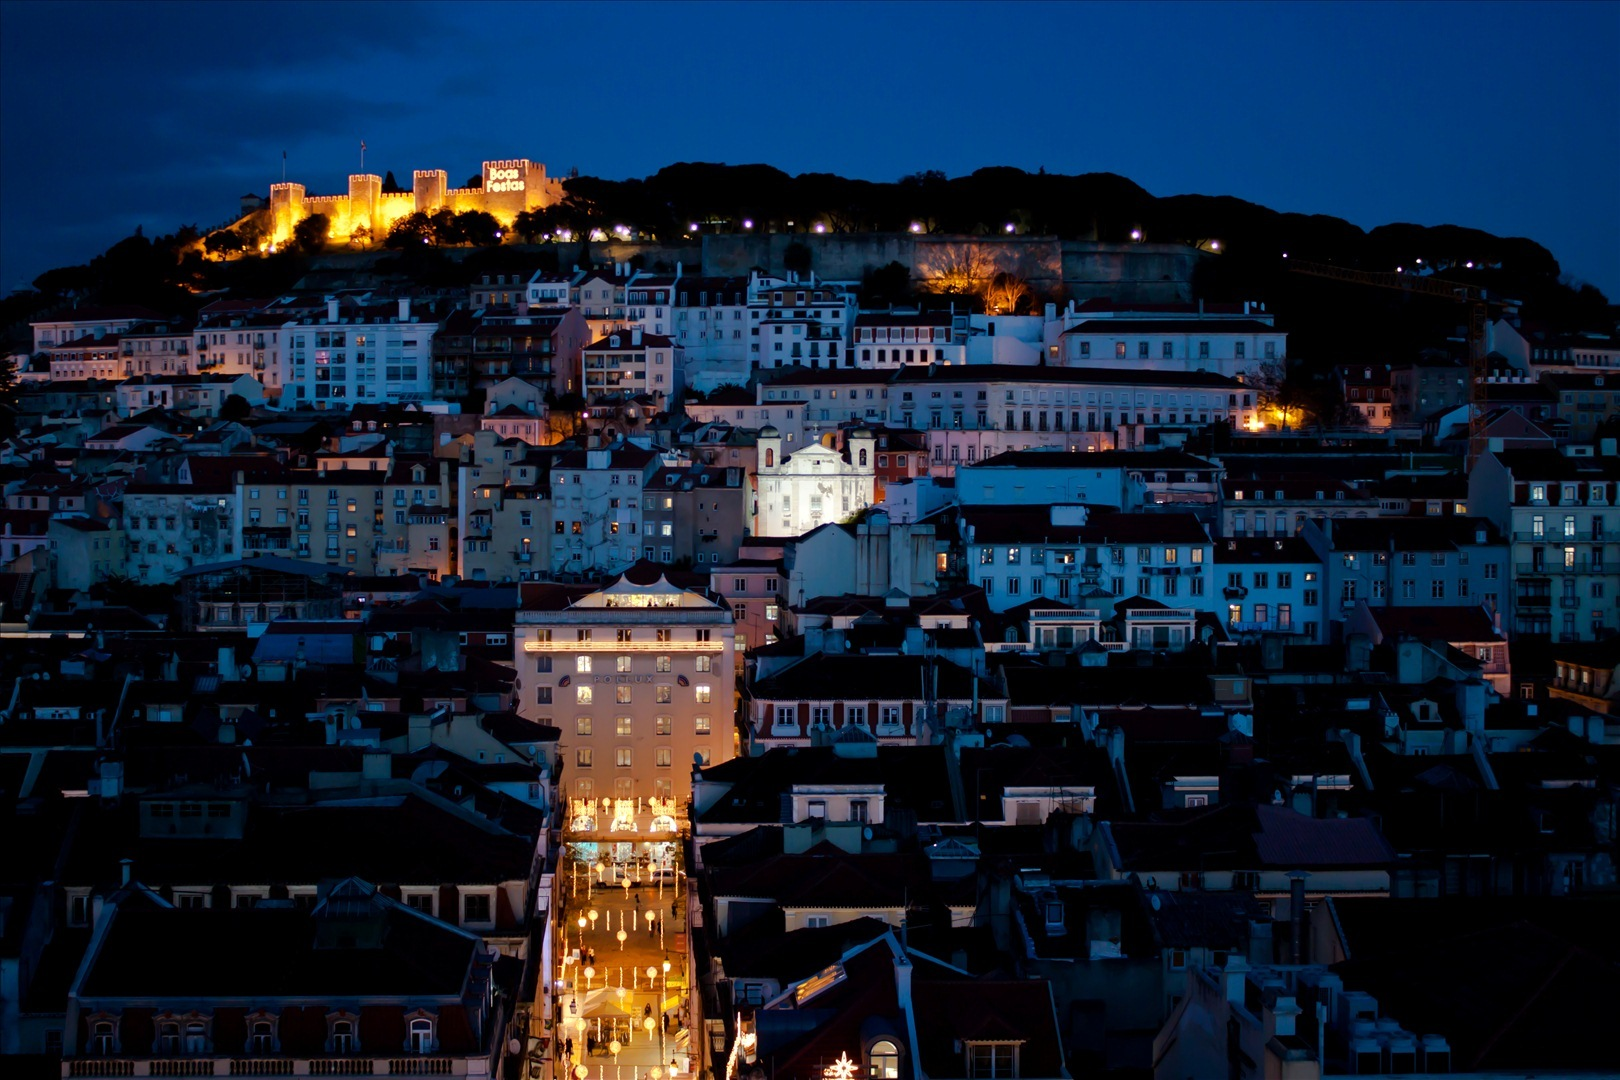 lisbon night lights blue hour landscape